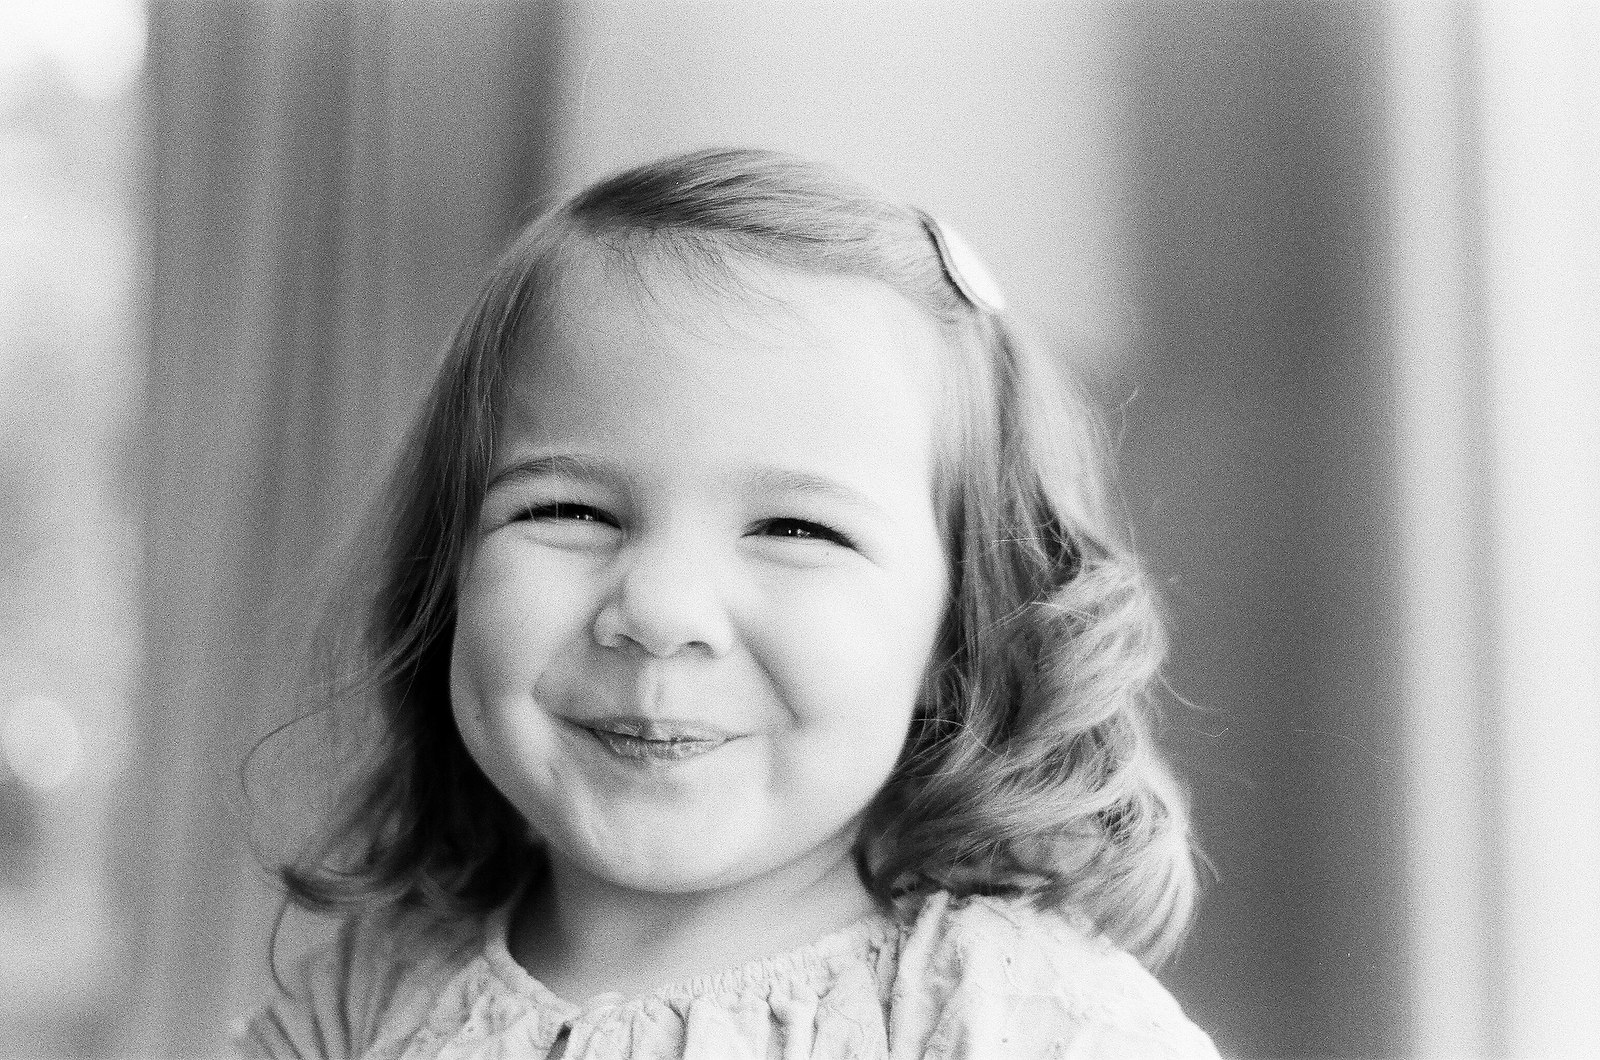 portraits of sibling by wendy g photography